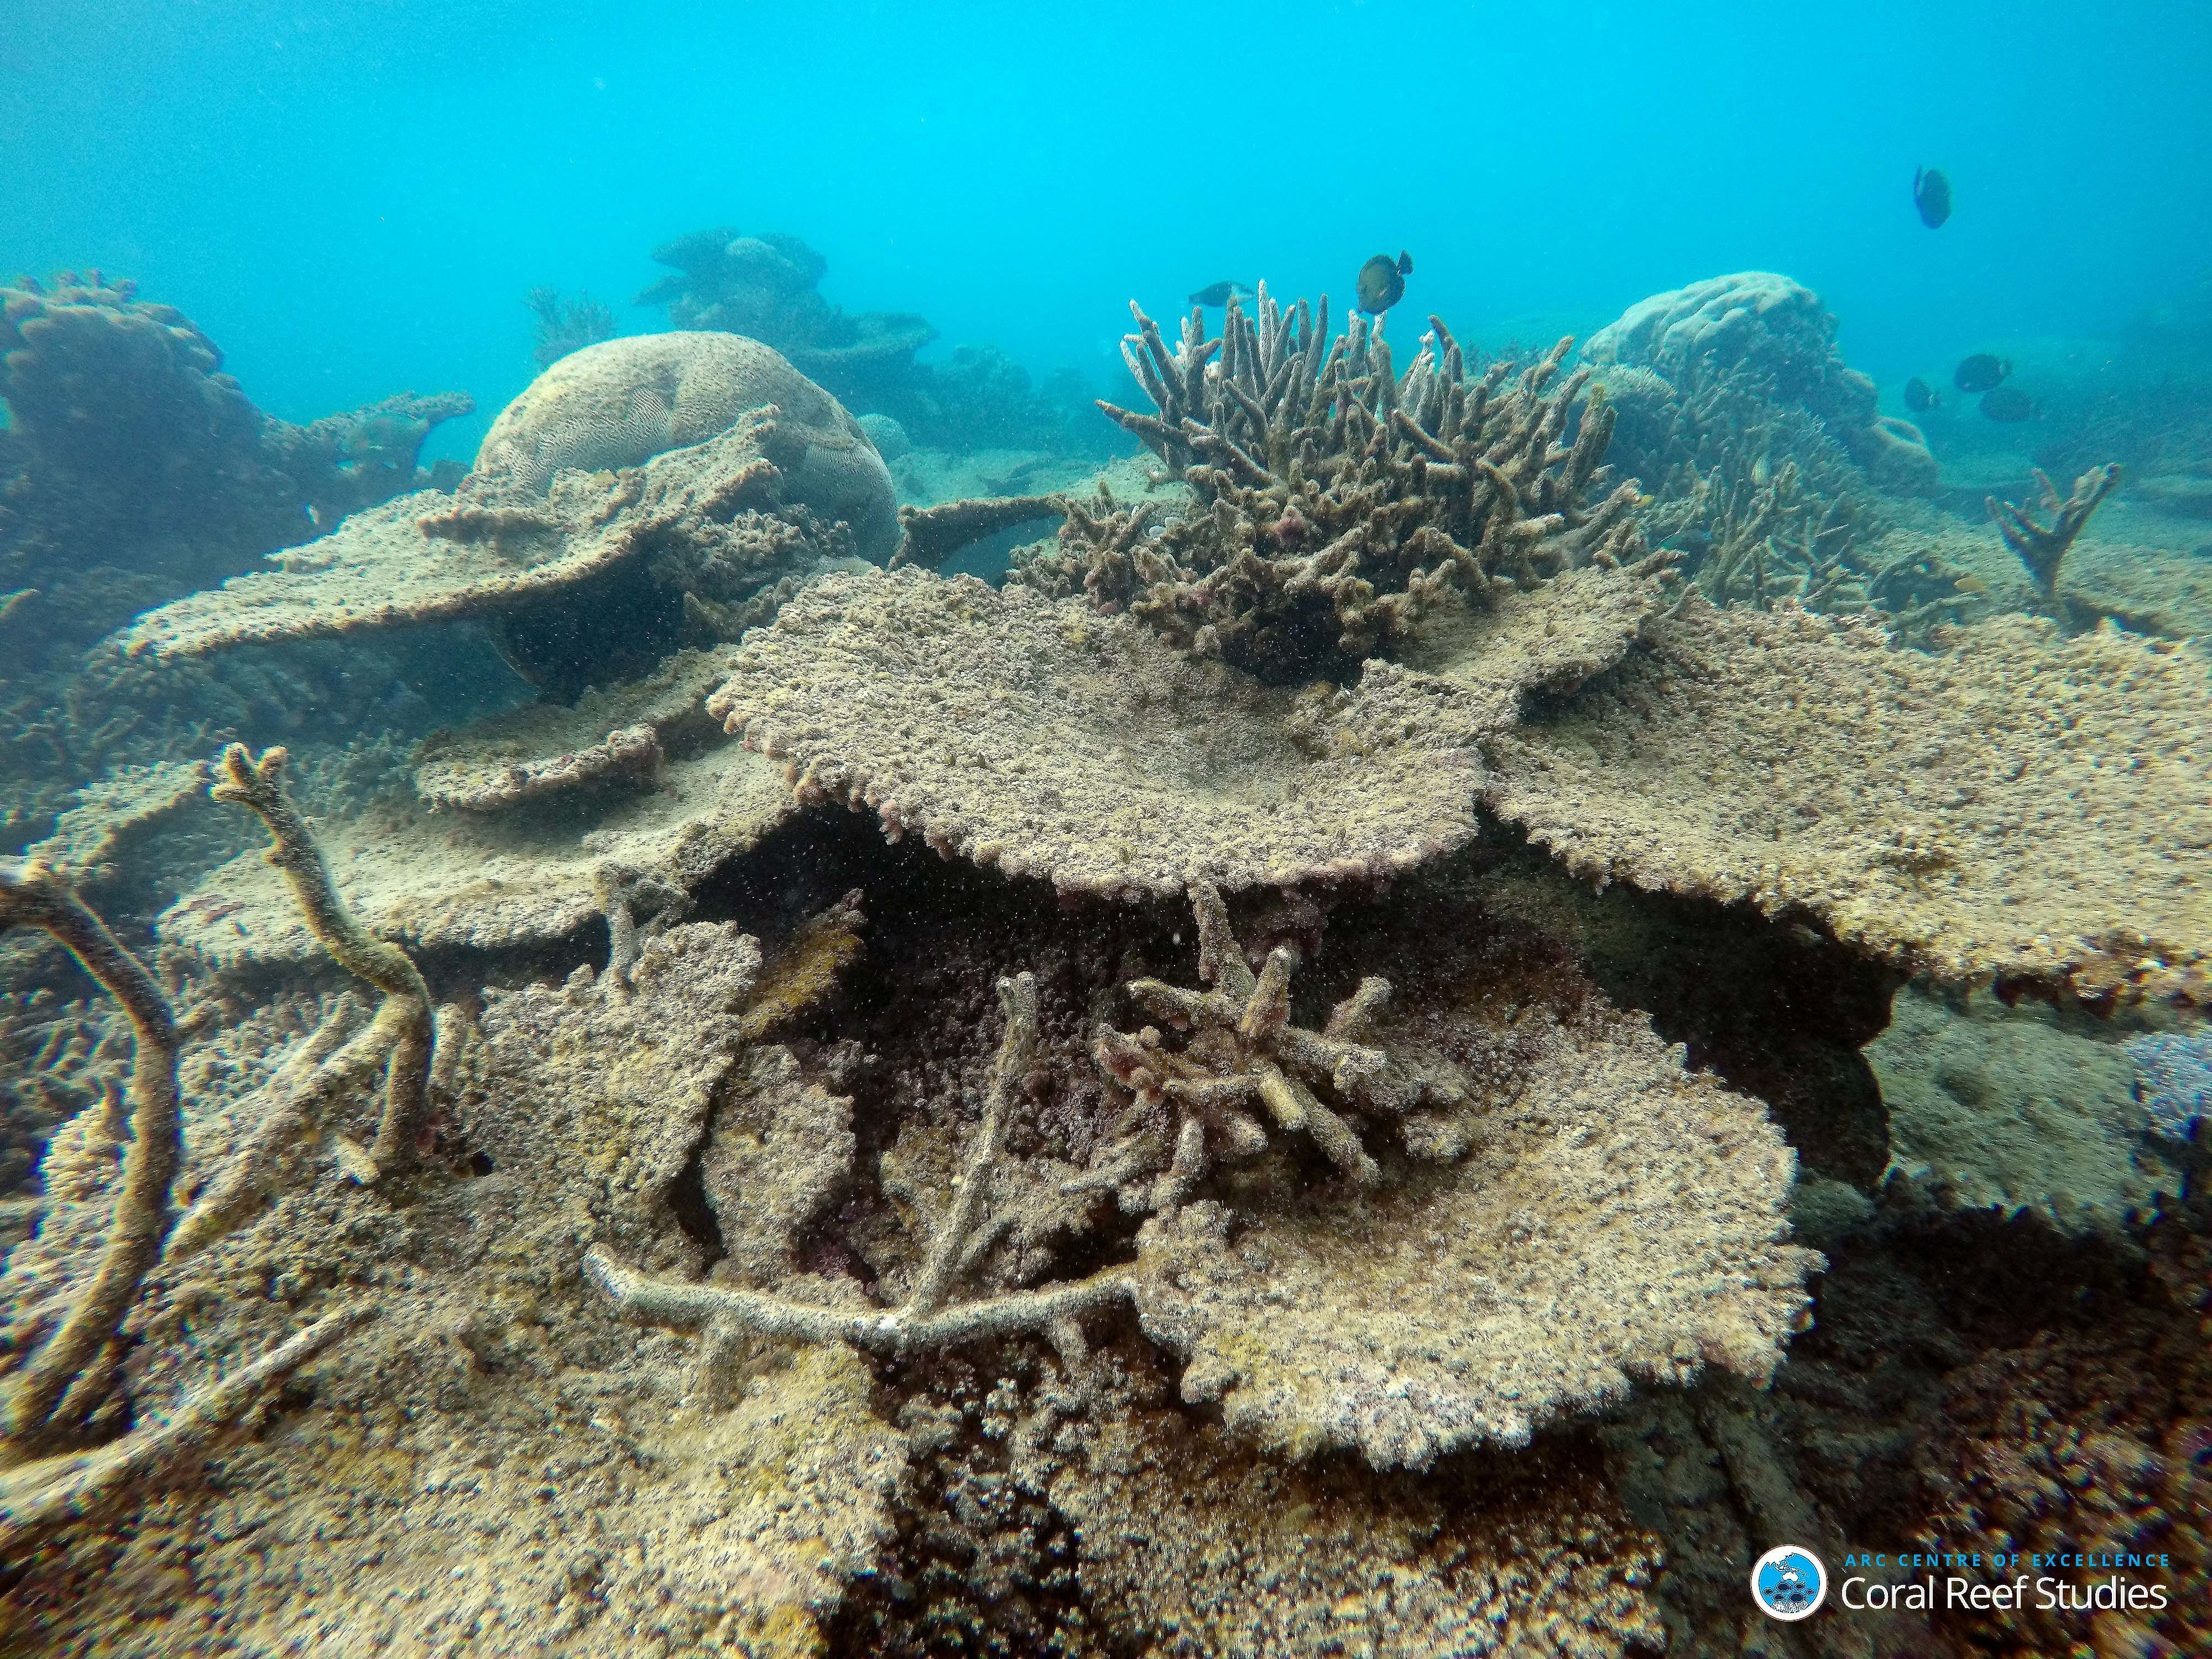 Dead table corals killed by bleaching on the Great Barrier Reef.